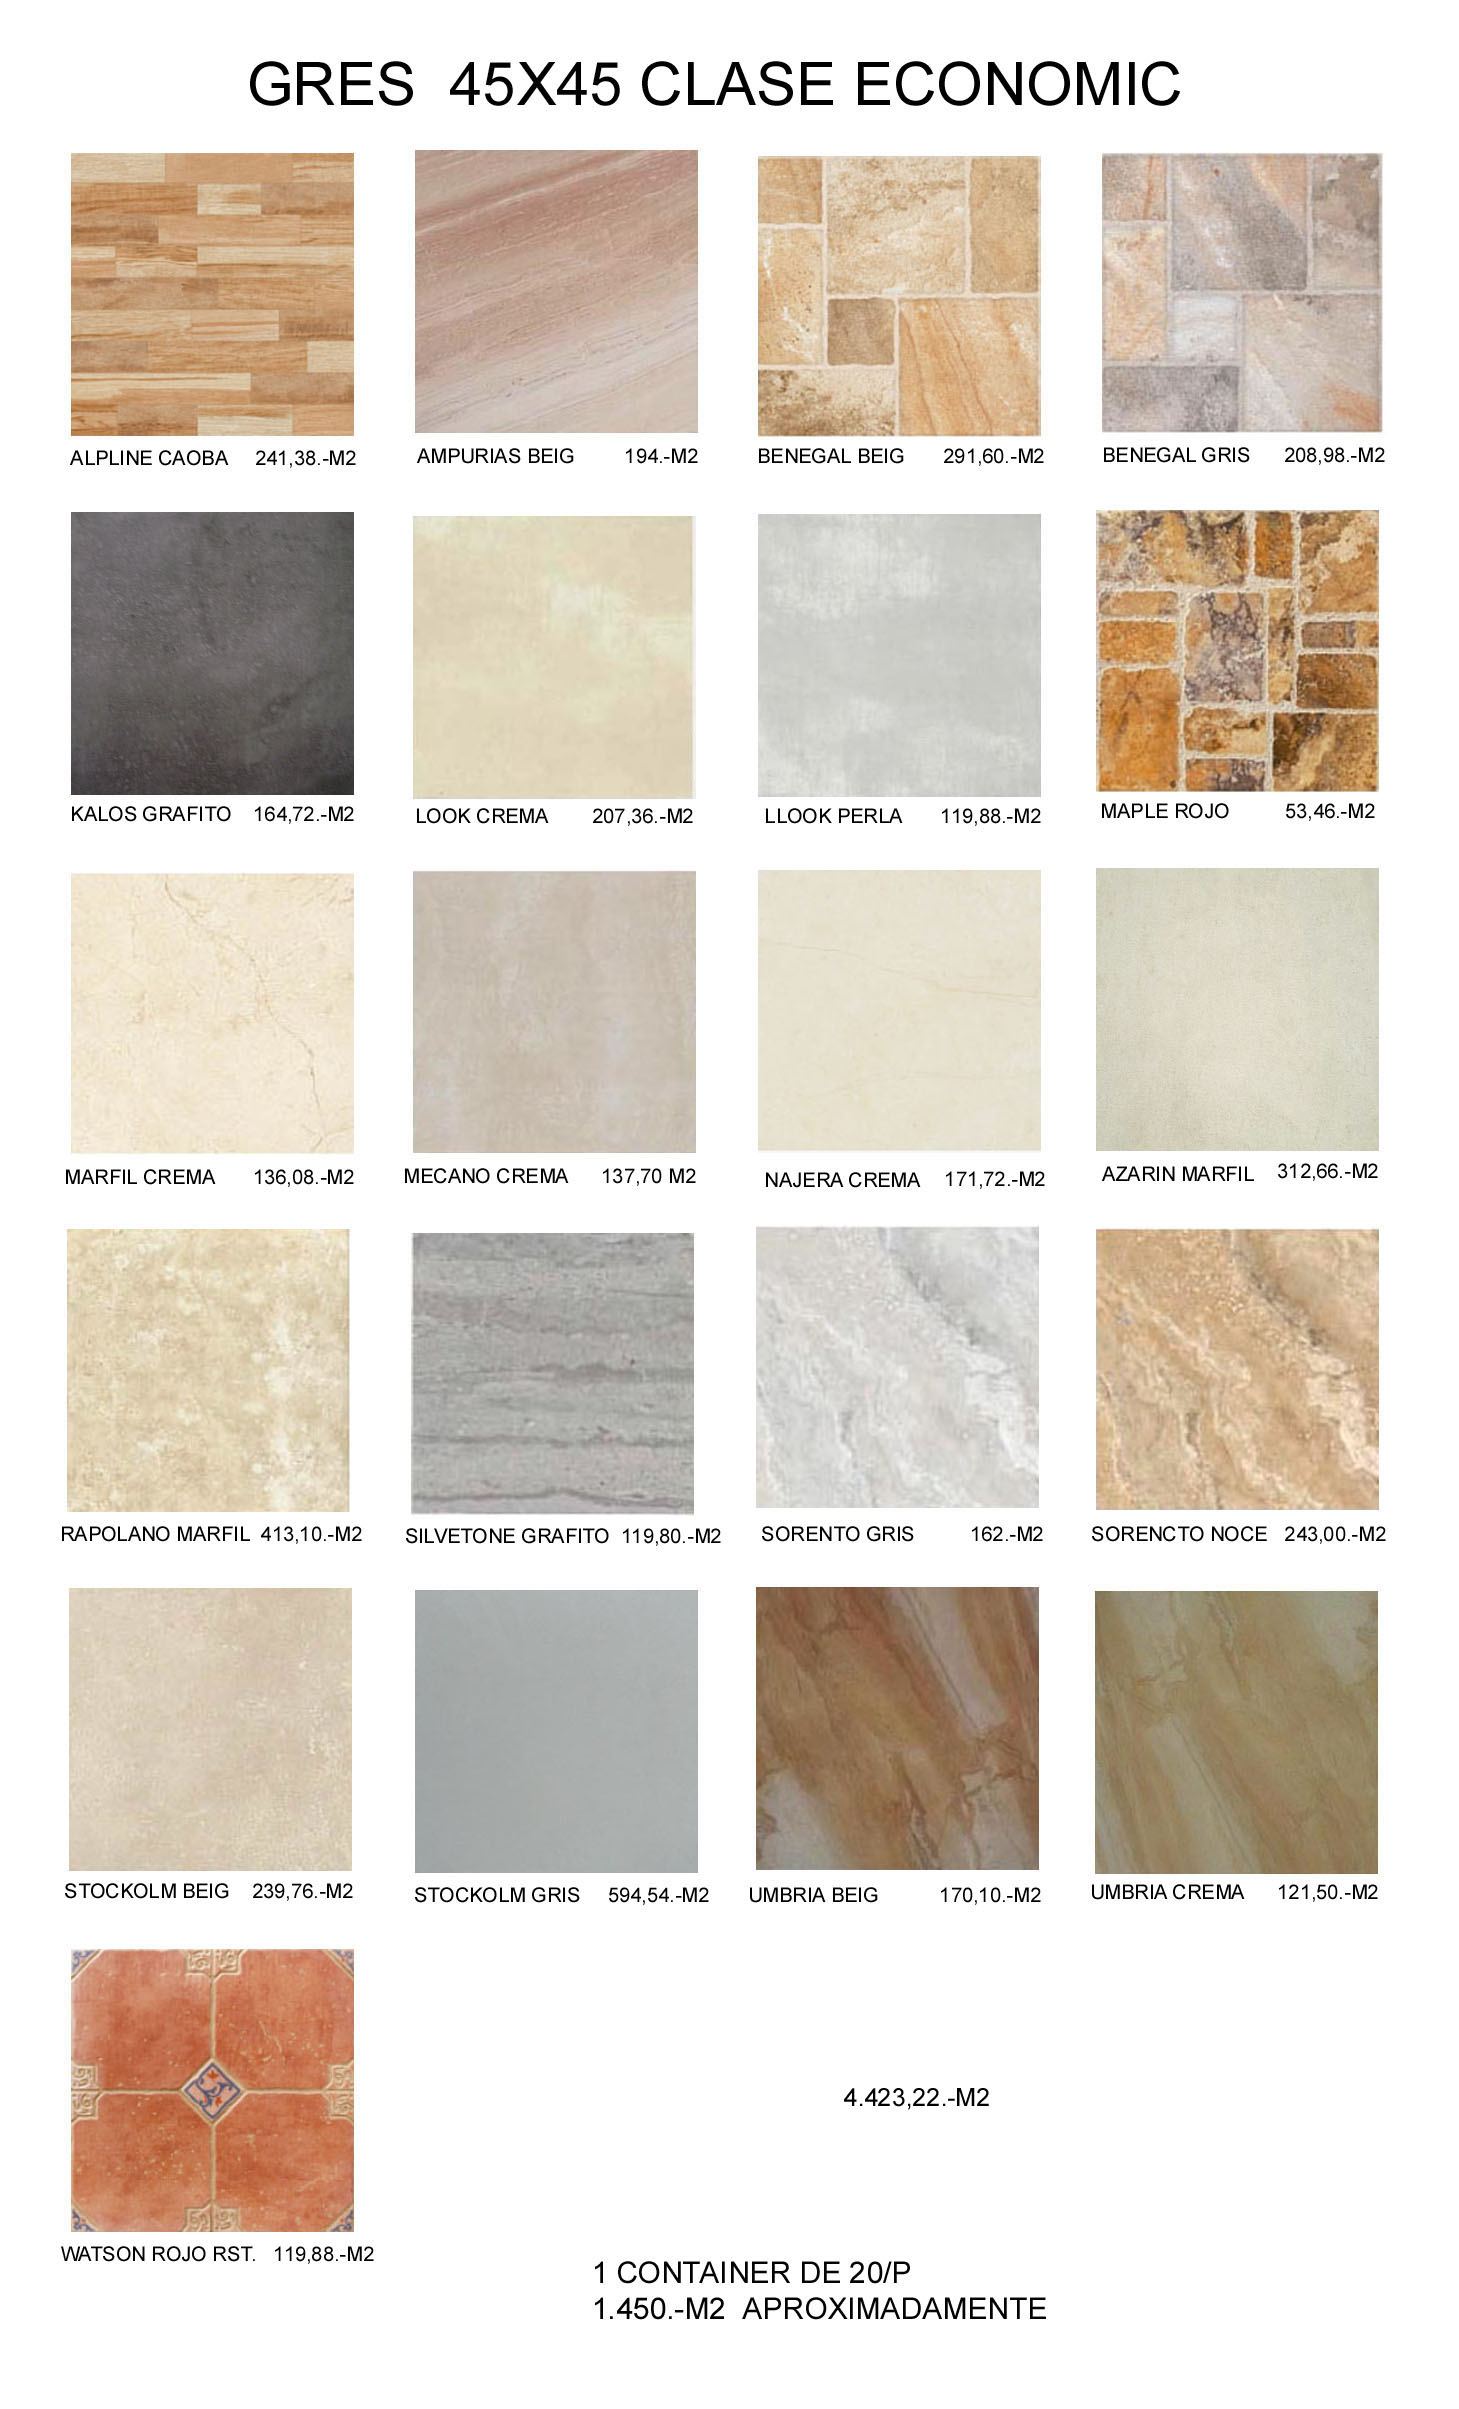 Floor tiles stock lot from spain europe global stocks 24623 floor tiles stock lot from spain europe doublecrazyfo Images